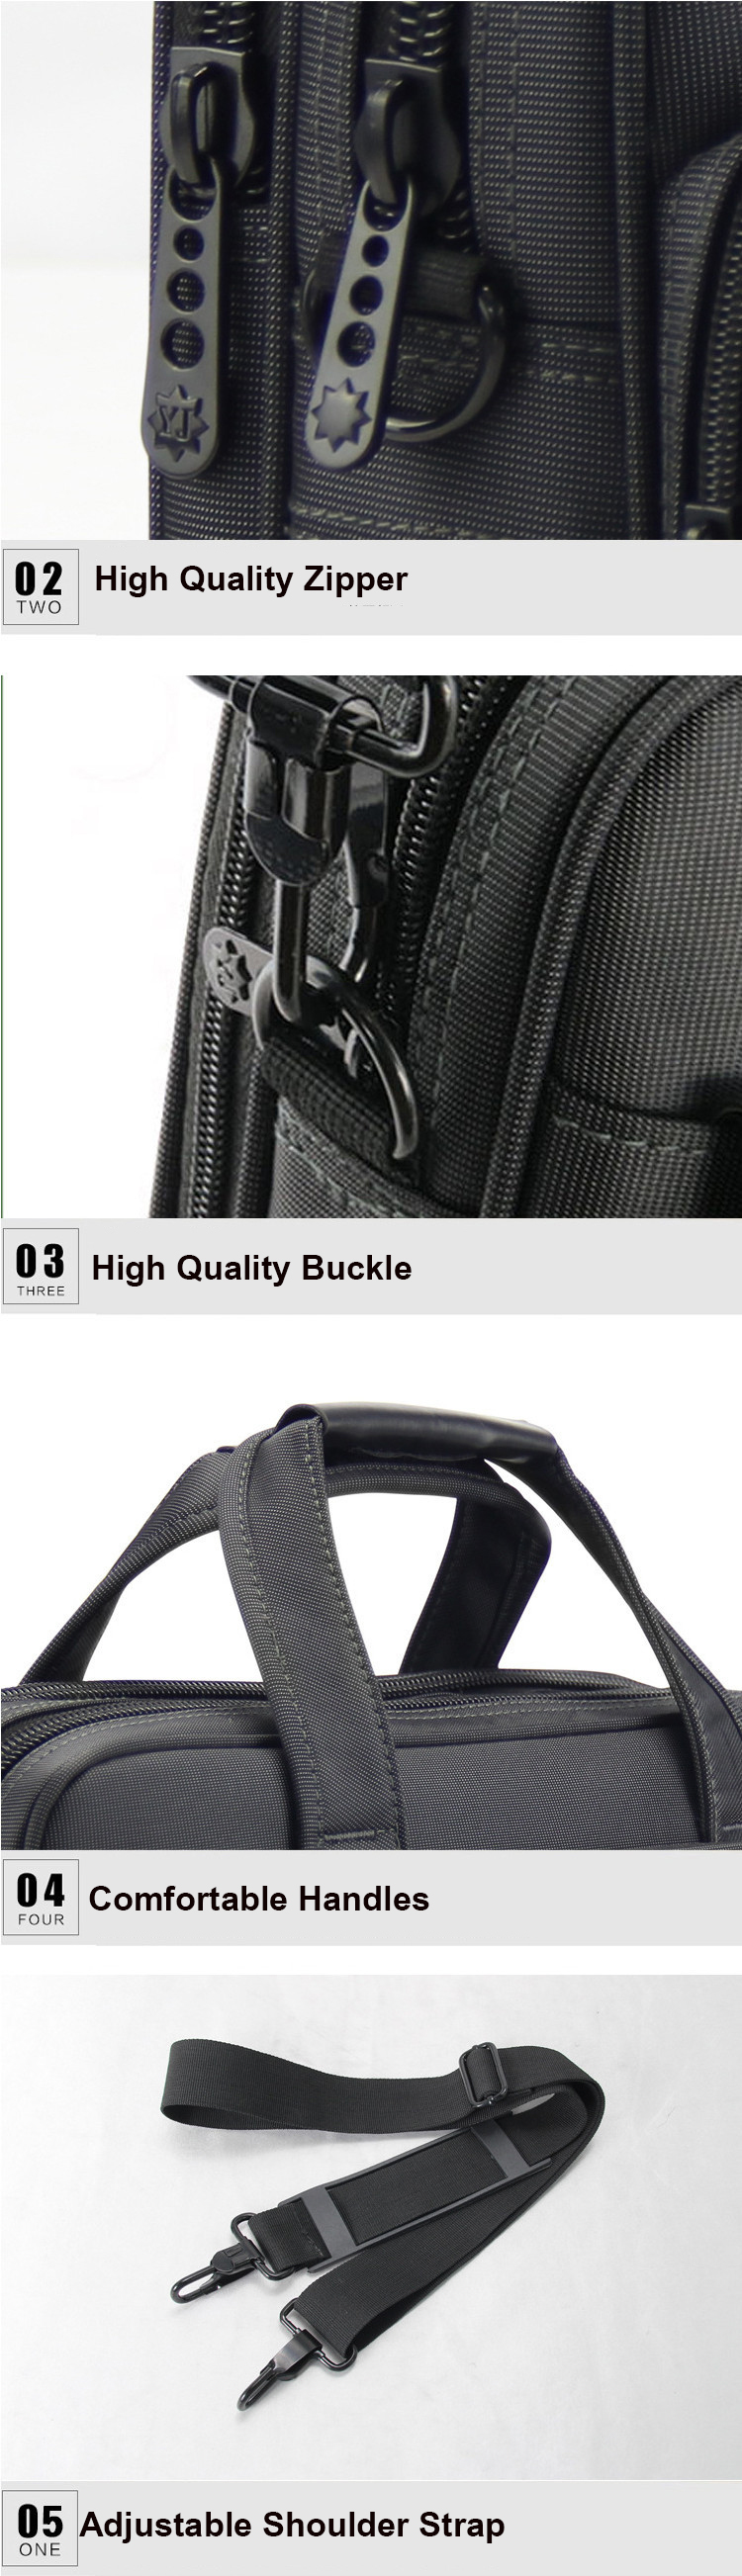 H0fb917015a304d109f38e6af4804f082W - OYIXINGER Briefcase Lawyer Men Computer Hand Bags Luxury Brand Mens Business Bag Oxford Waterproof Office Work For Maletas